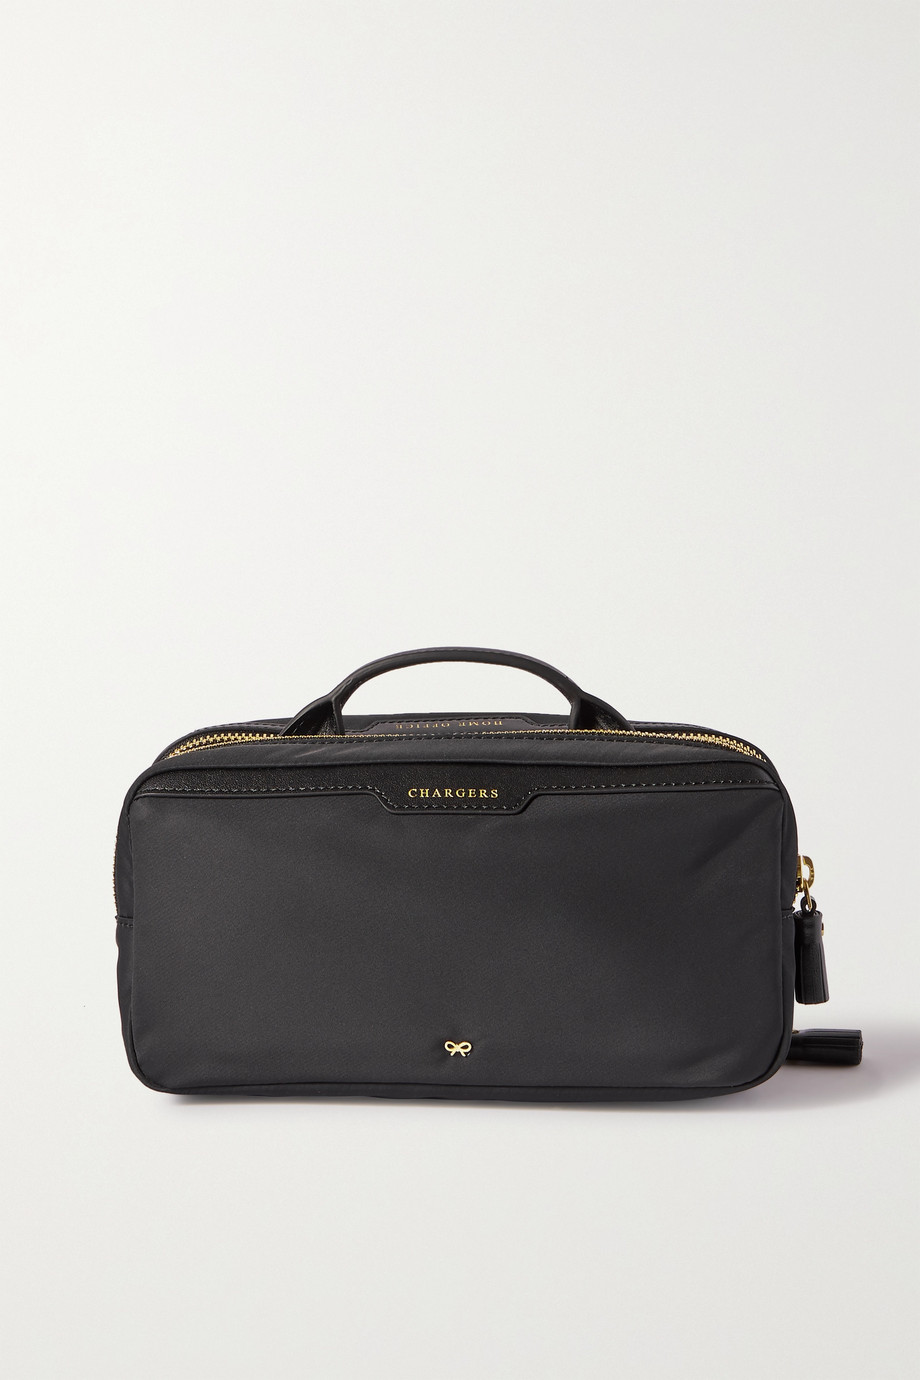 Anya Hindmarch + NET SUSTAIN Home Office leather-trimmed ECONYL pouch